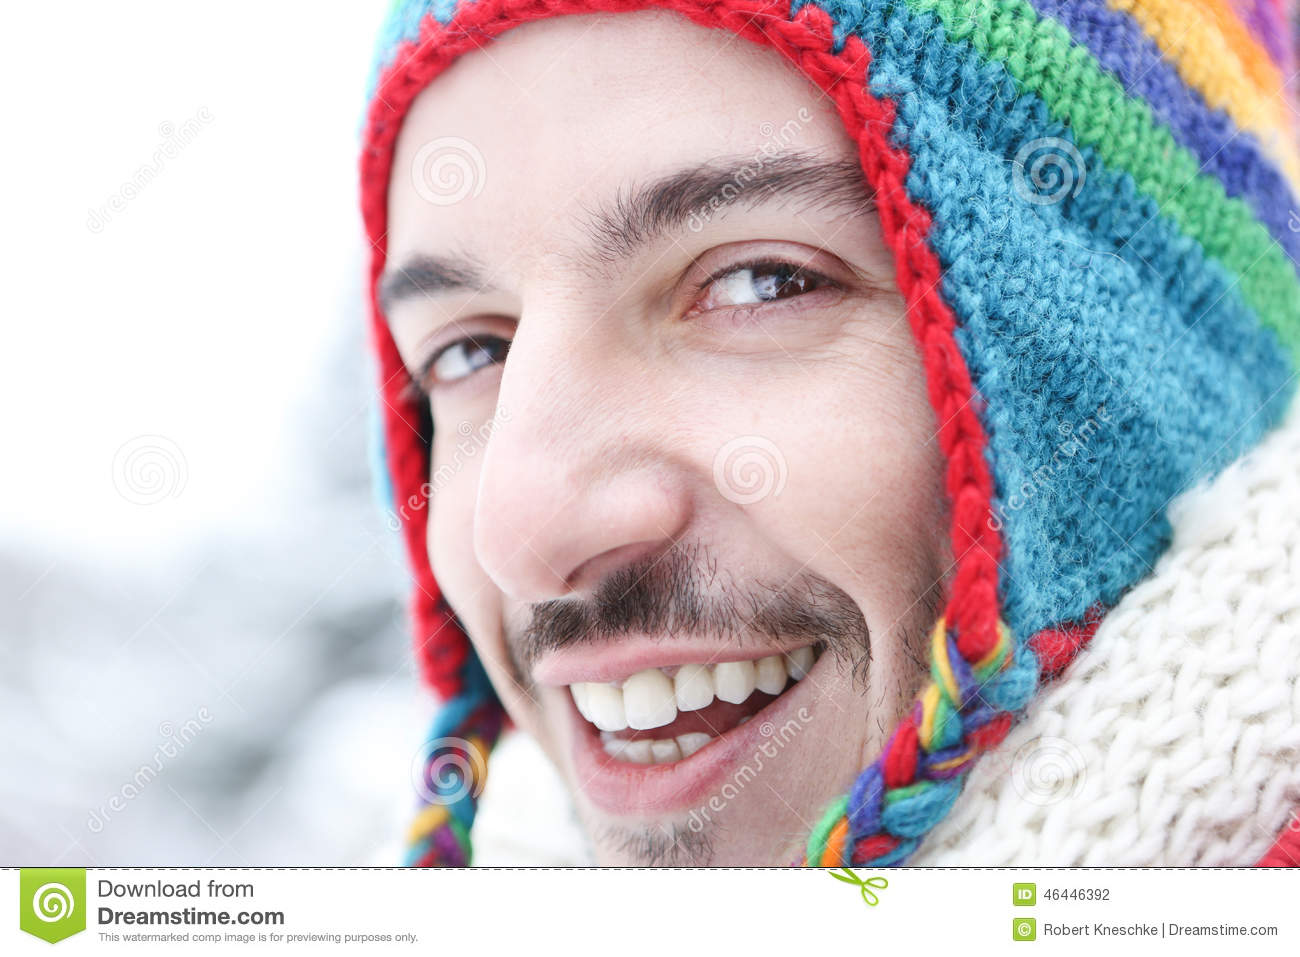 e8091a032e67 Happy Man In Winter With Wool Cap Stock Photo - Image of wool ...